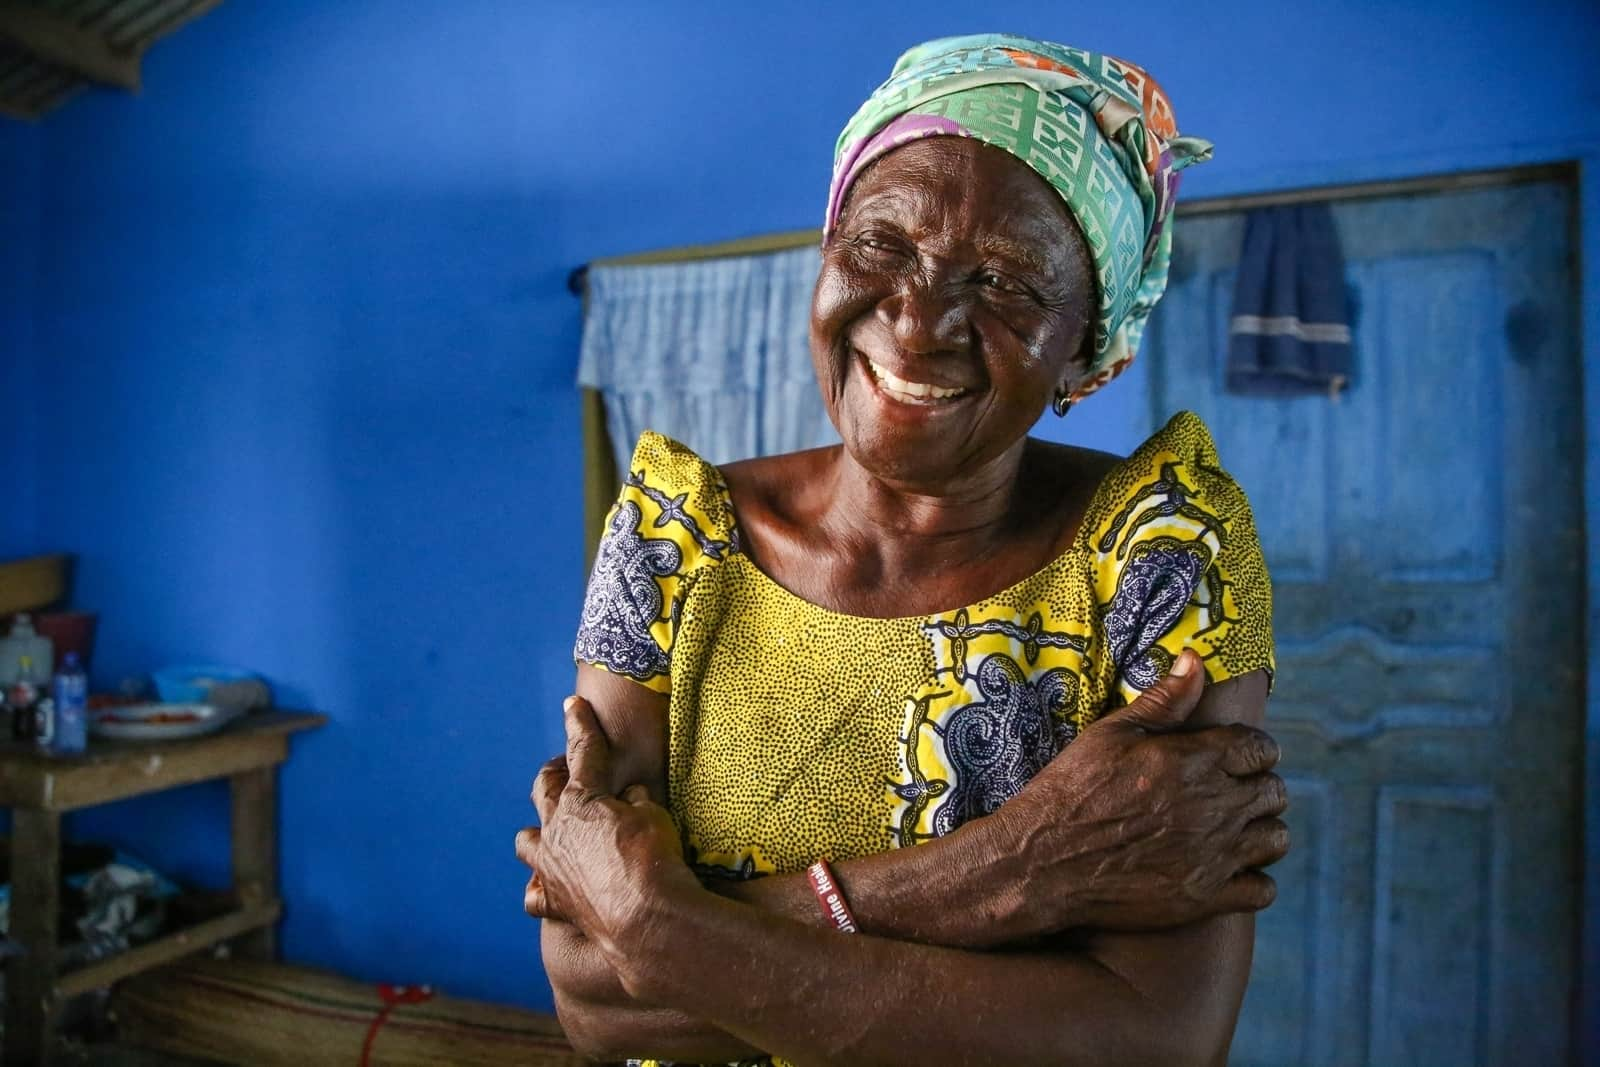 An African grandmother dressed in brightly colored clothing smiles